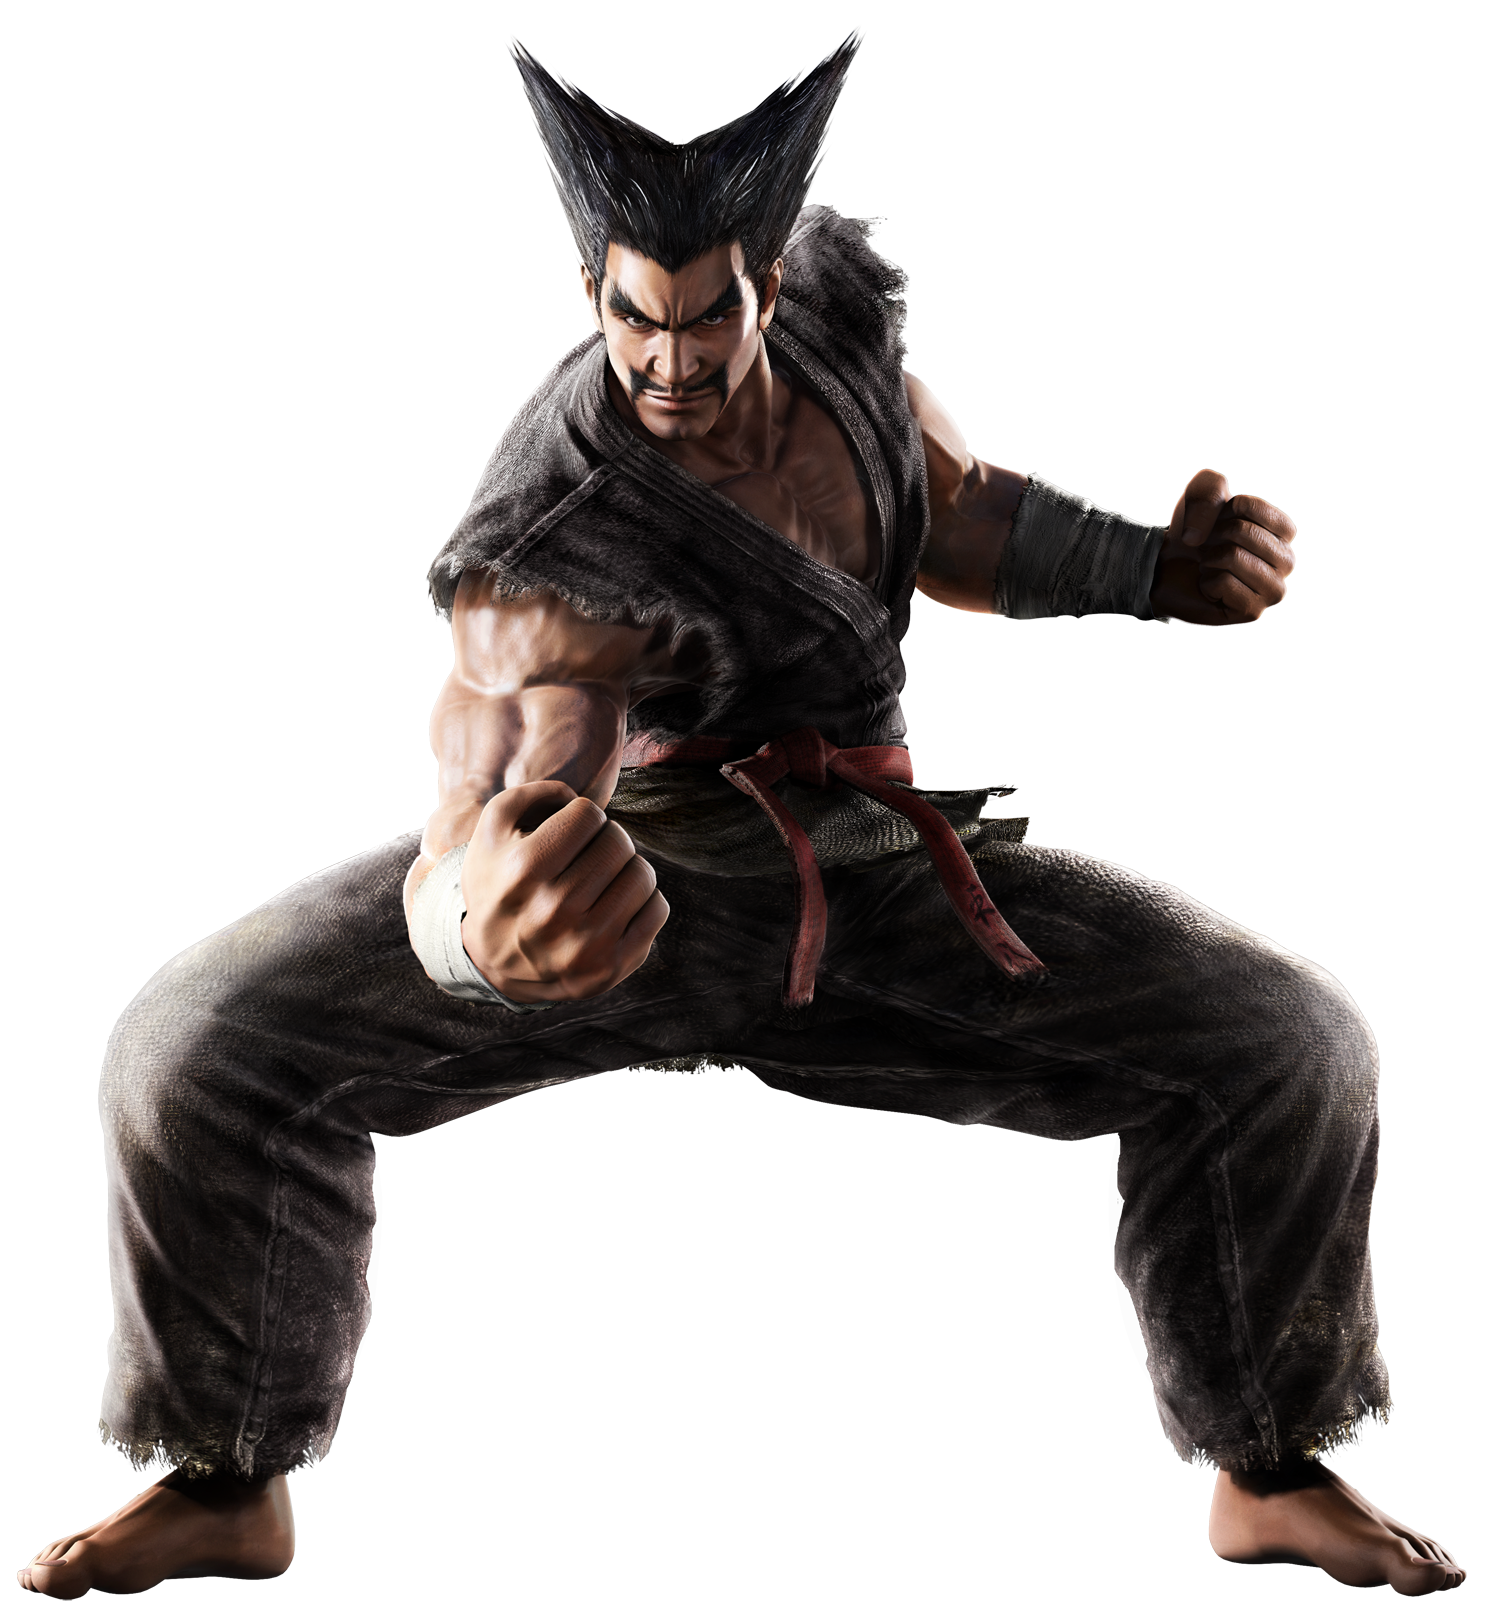 heihachi mishima smashwiki the super smash bros wiki heihachi mishima smashwiki the super